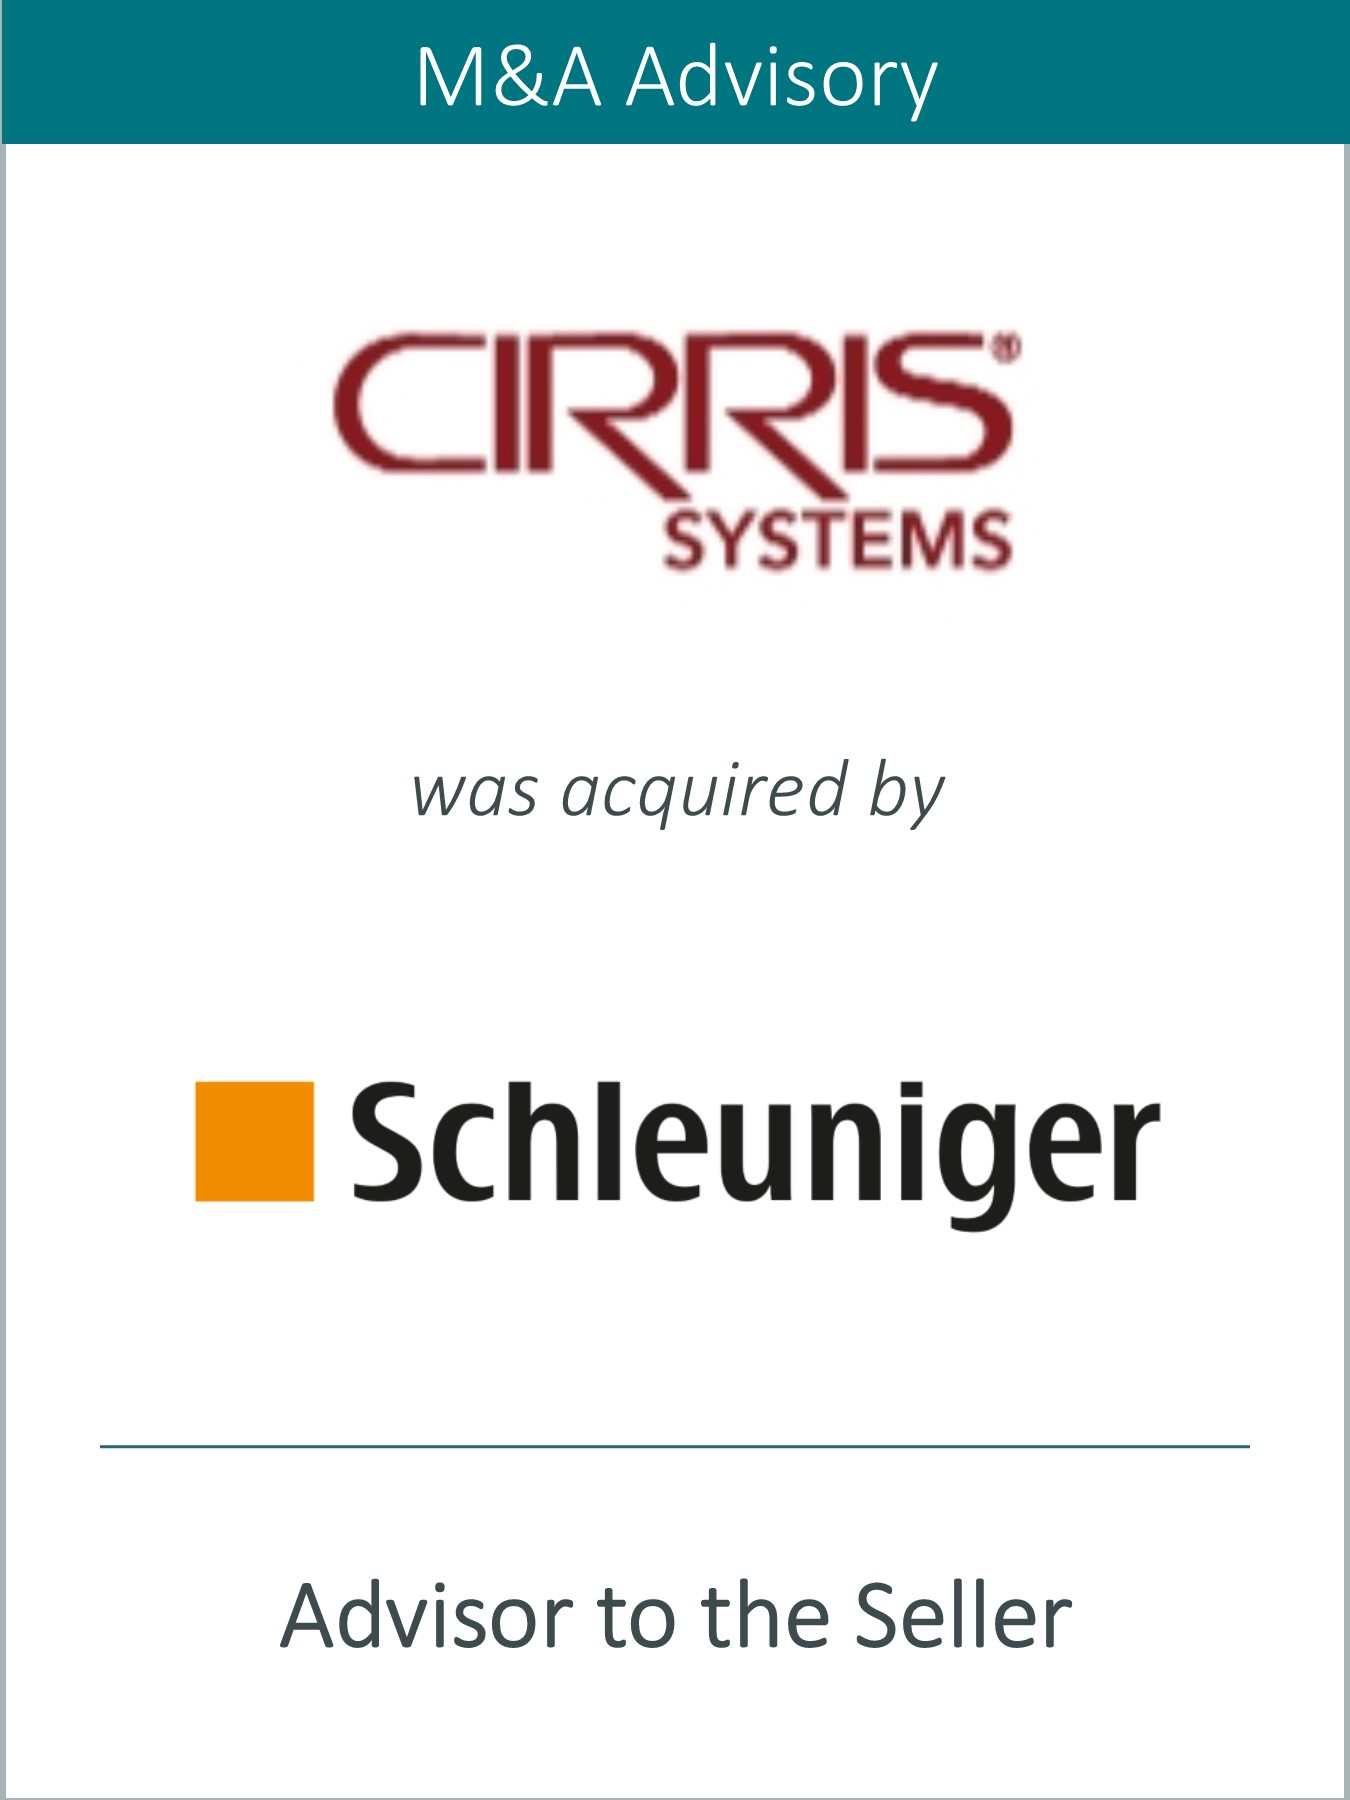 Prairie Represents Cirris Systems Corporation in its Sale to The Schleuniger Group